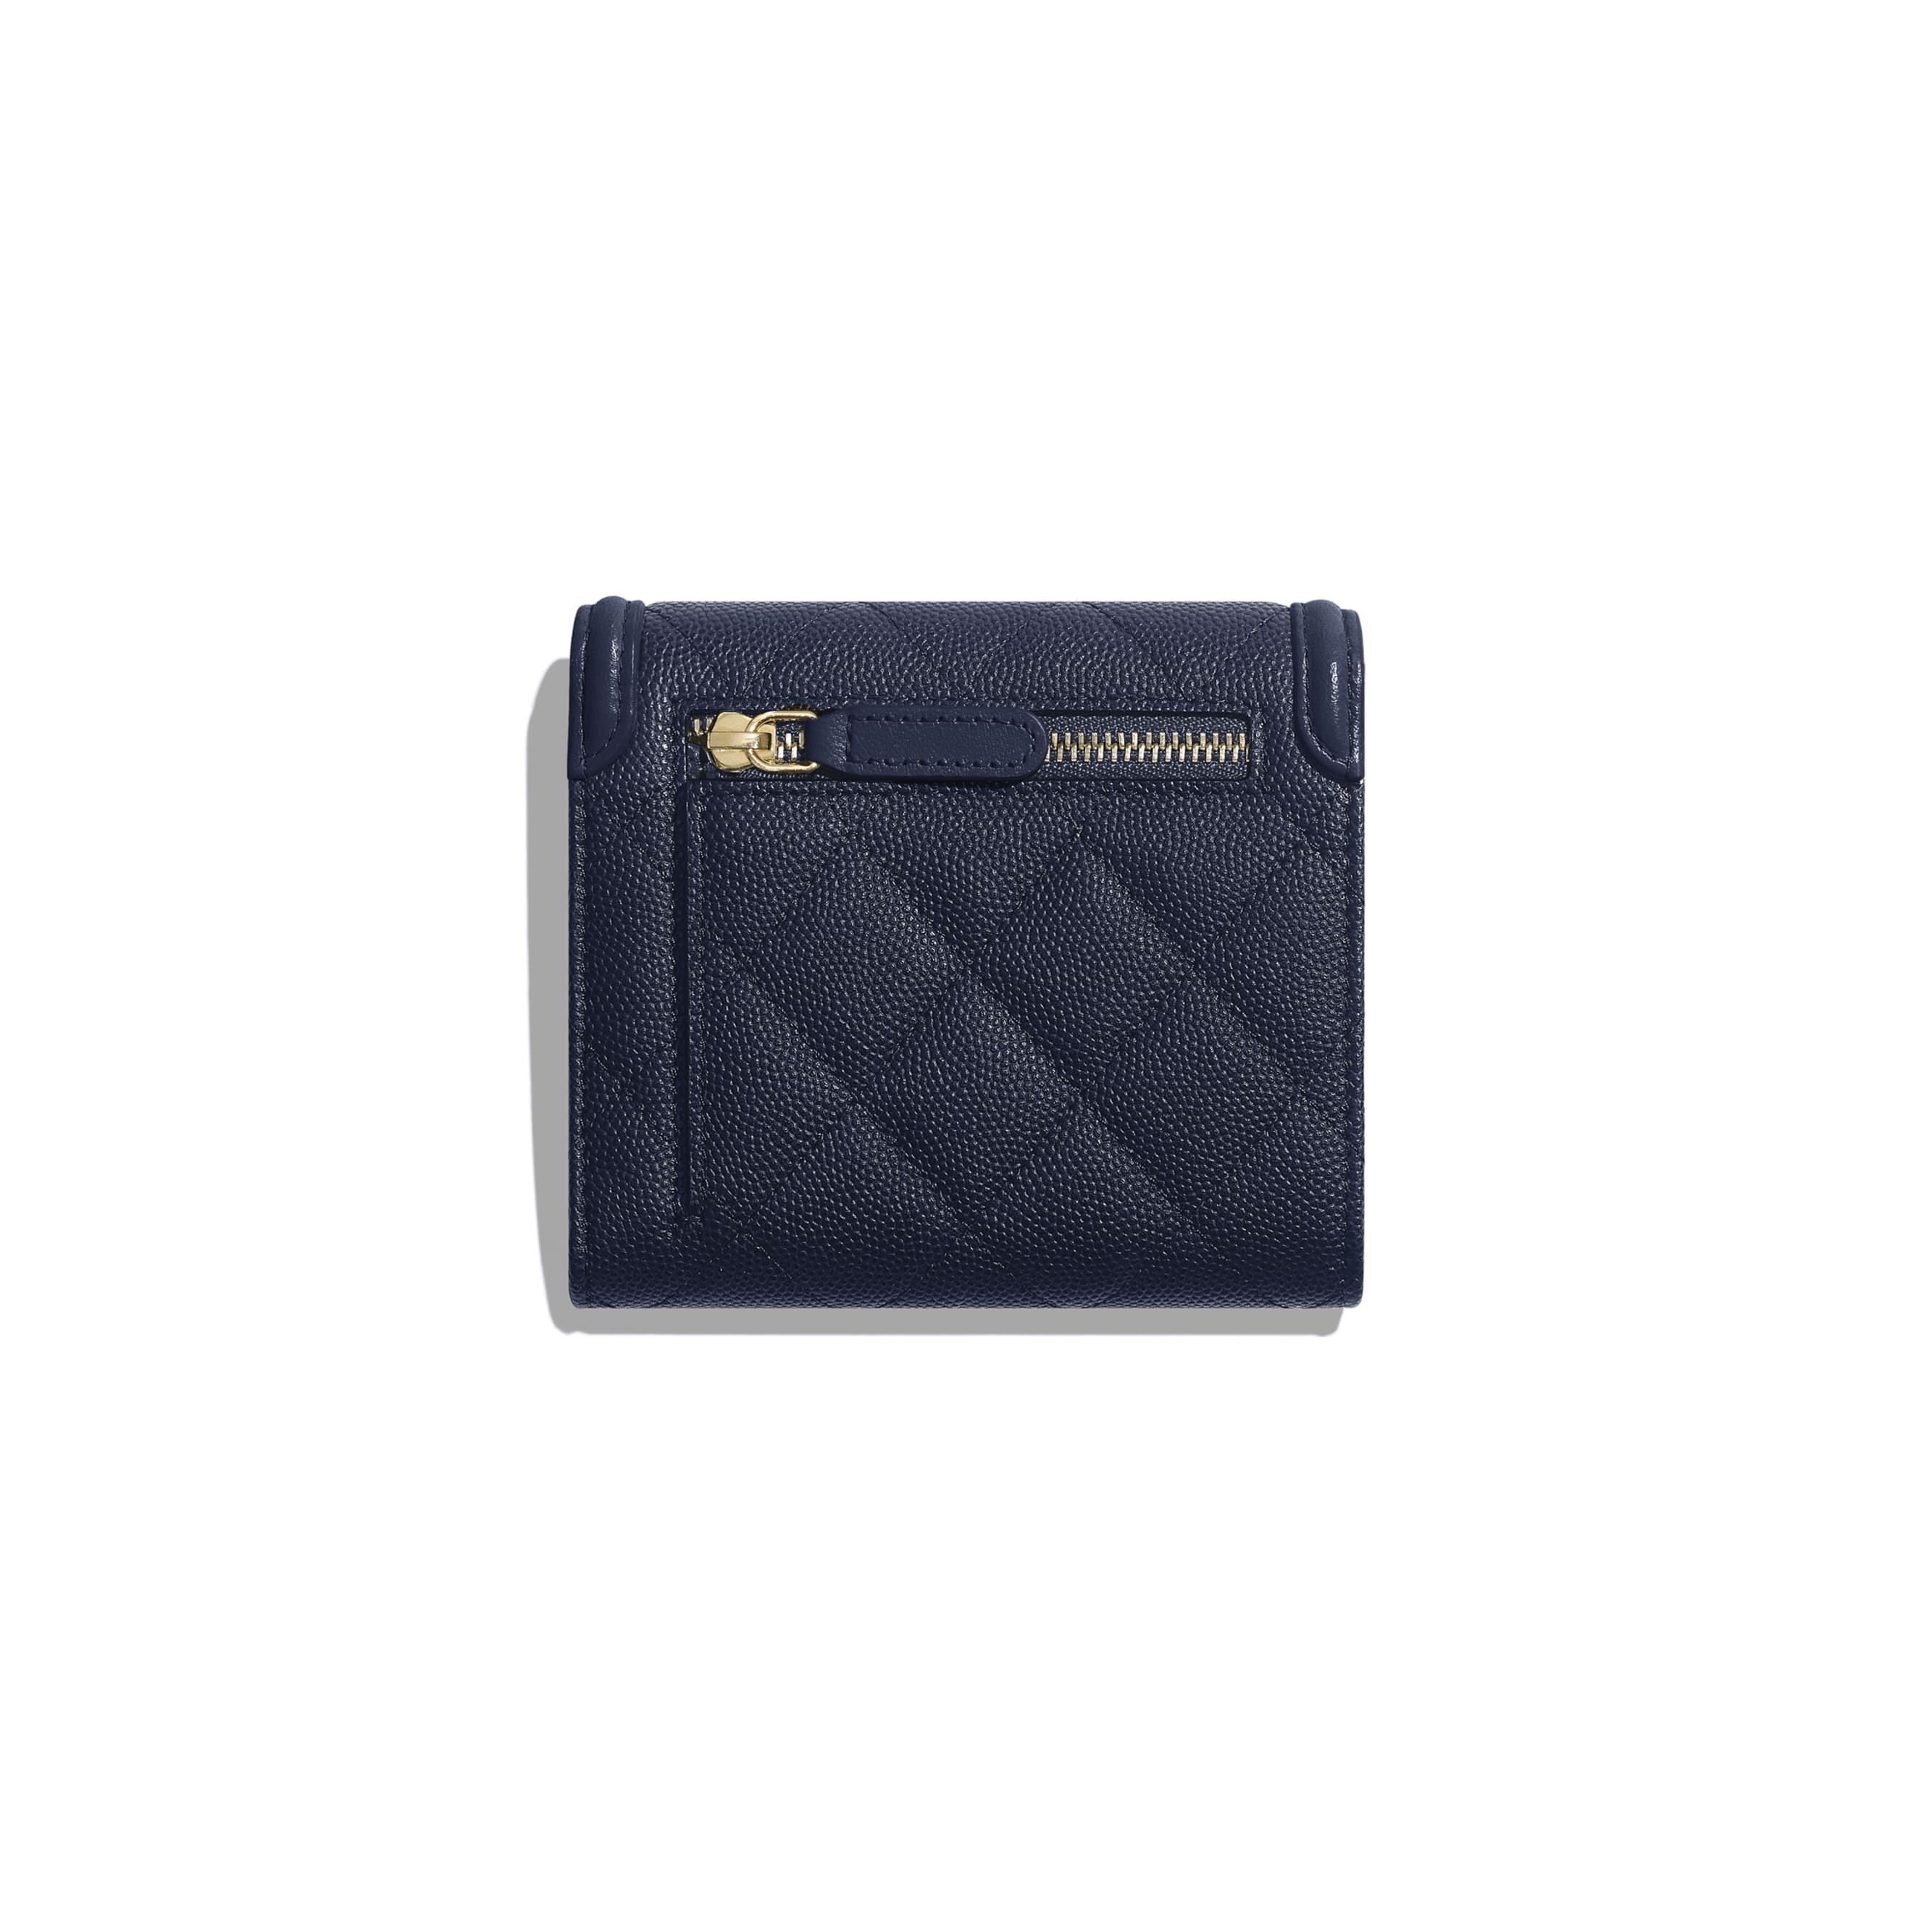 Small Flap Wallet - Navy Blue - Grained Calfskin & Gold-Tone Metal - Alternative view - see standard sized version